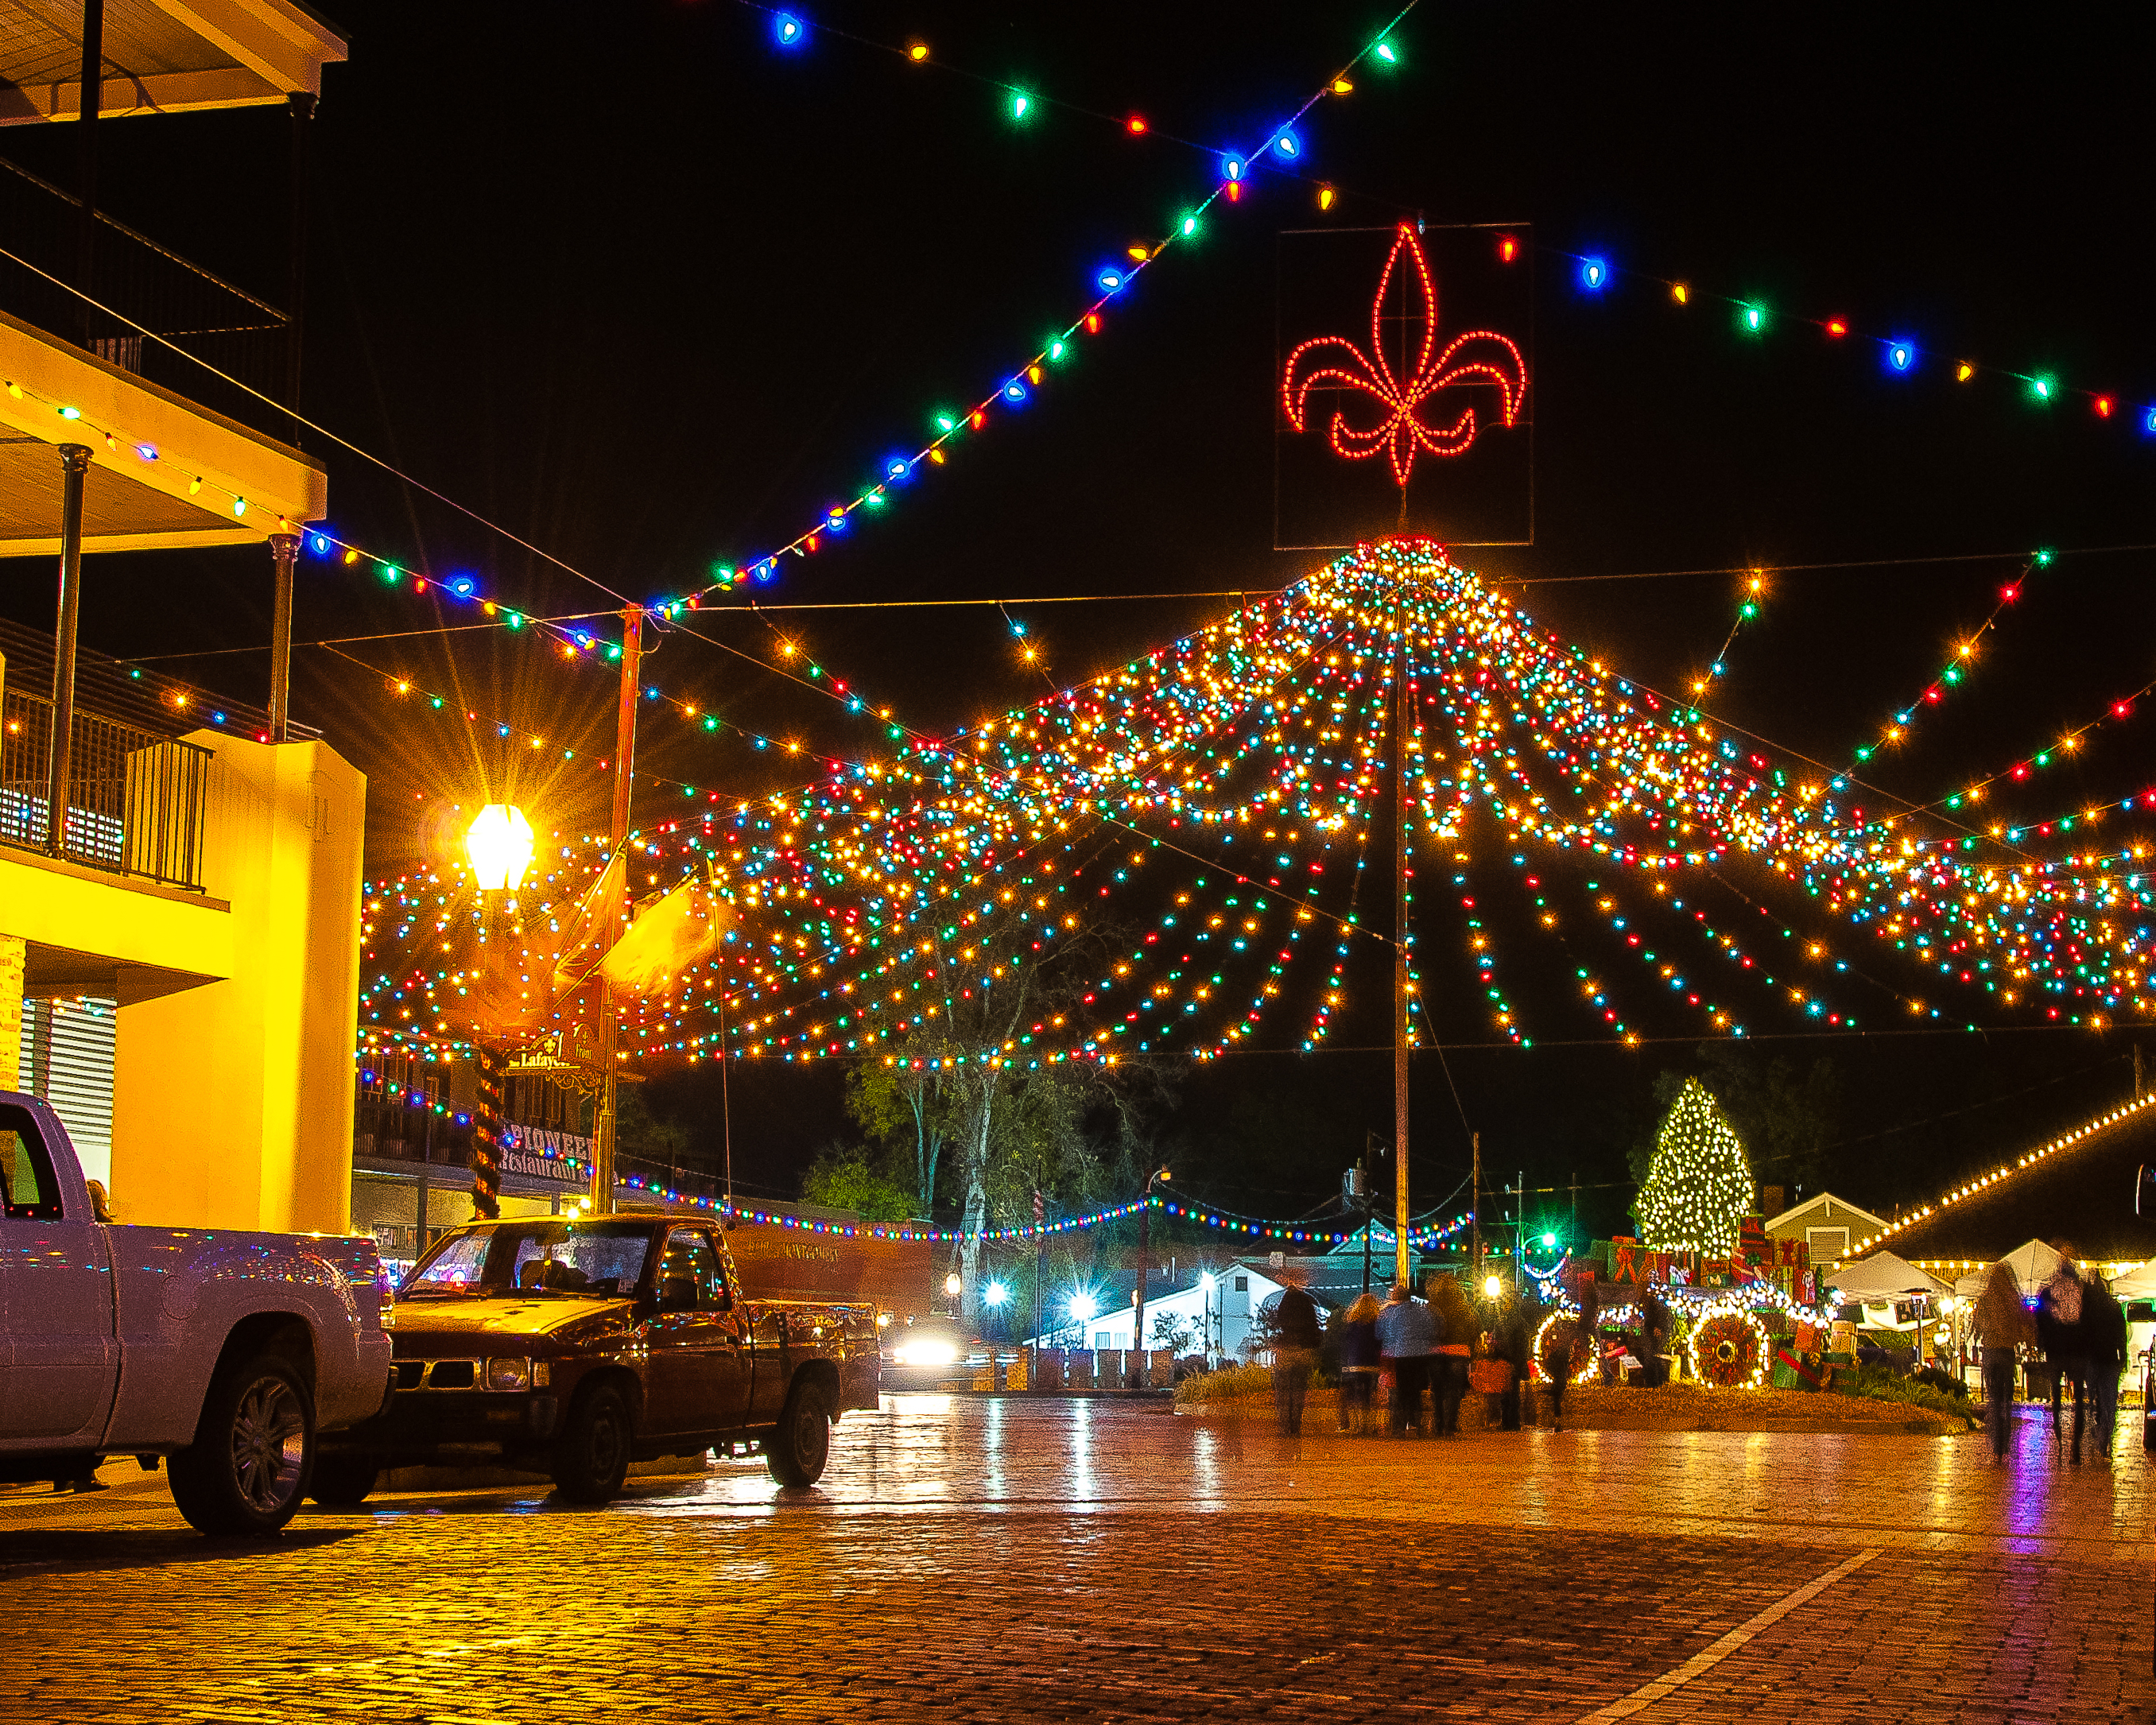 Christmas Lights In Louisiana 2020 94th Annual Natchitoches Christmas Festival | Louisiana Travel